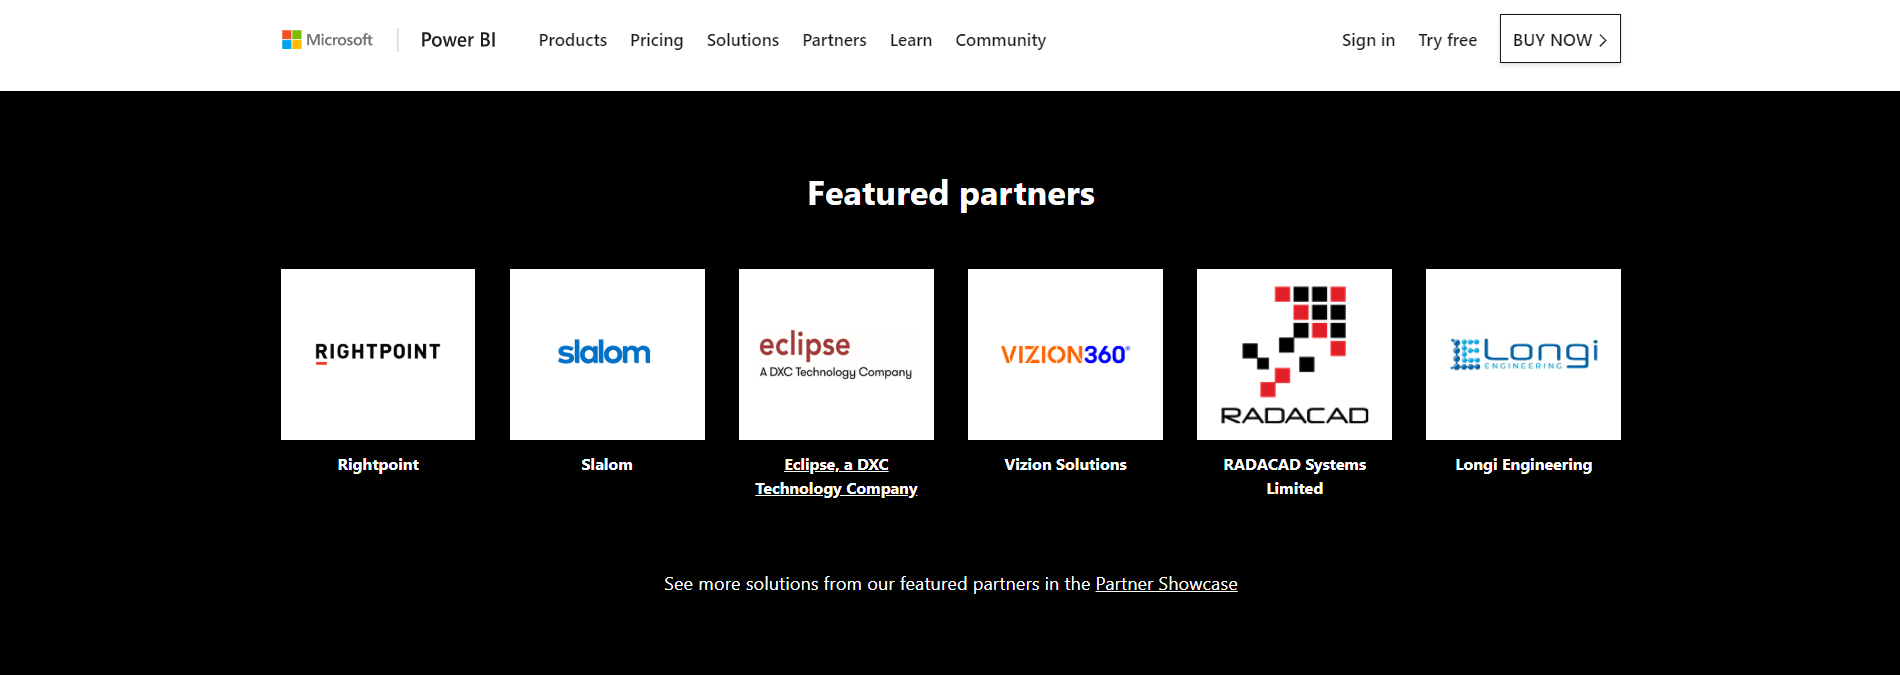 Vizion360 Named Featured Partner with Microsoft Power BI